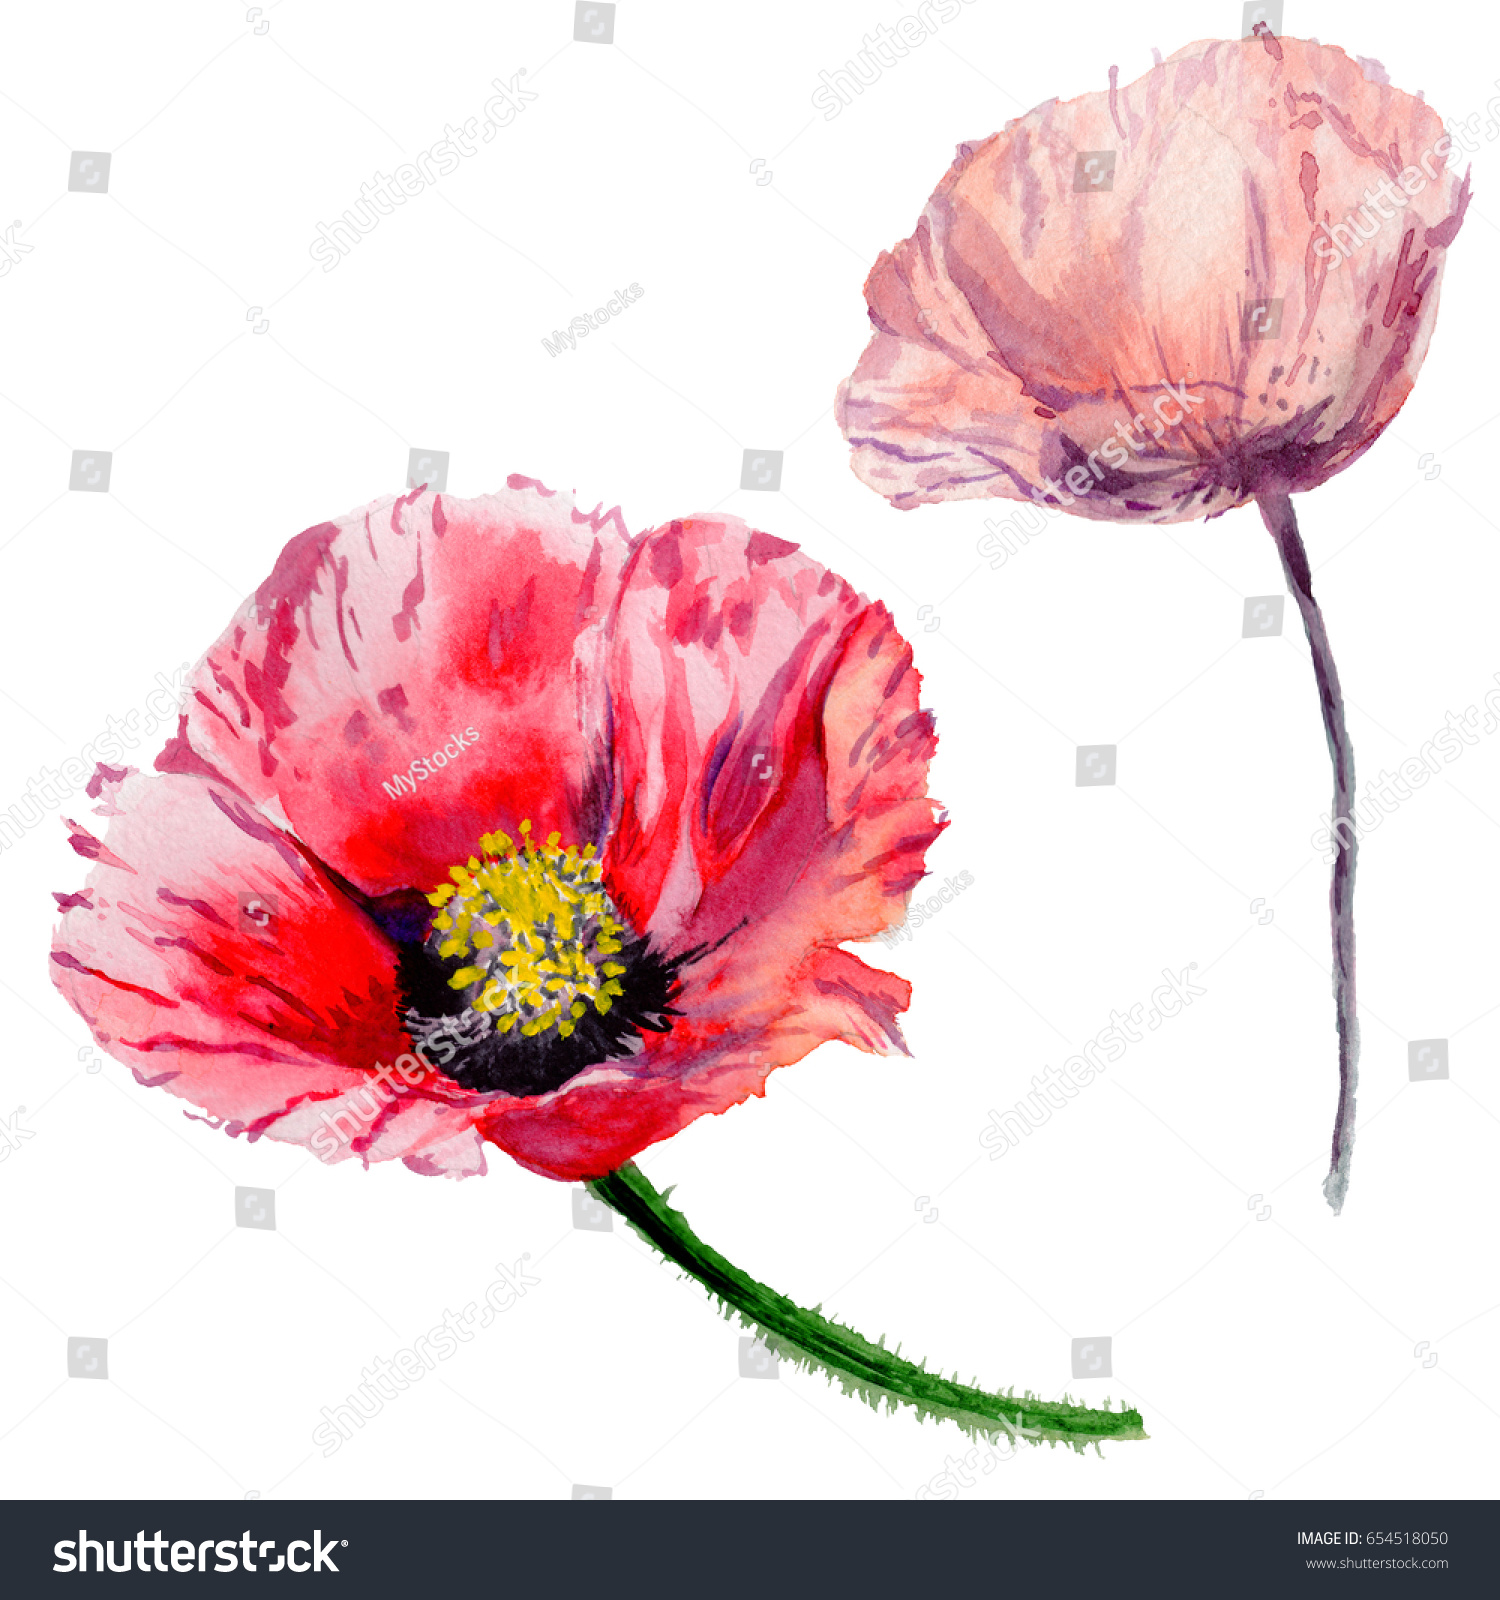 Wildflower Poppy Flower Watercolor Style Isolated Stock Illustration